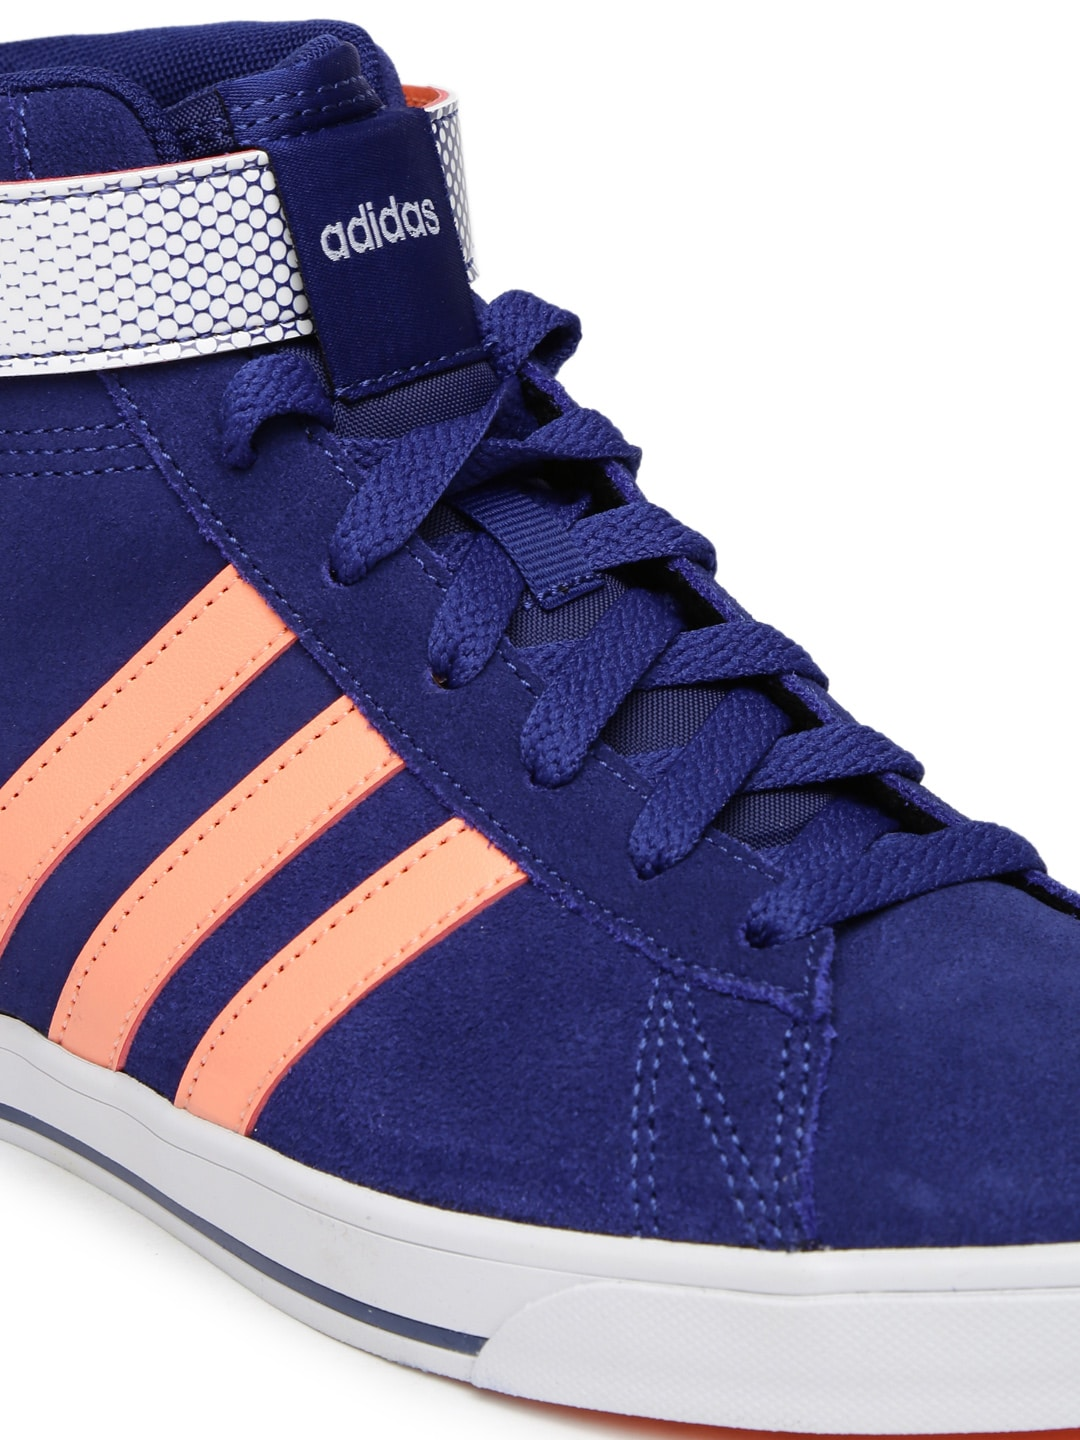 Adidas Neo Daily Twist Mid Top Sneaker Womens